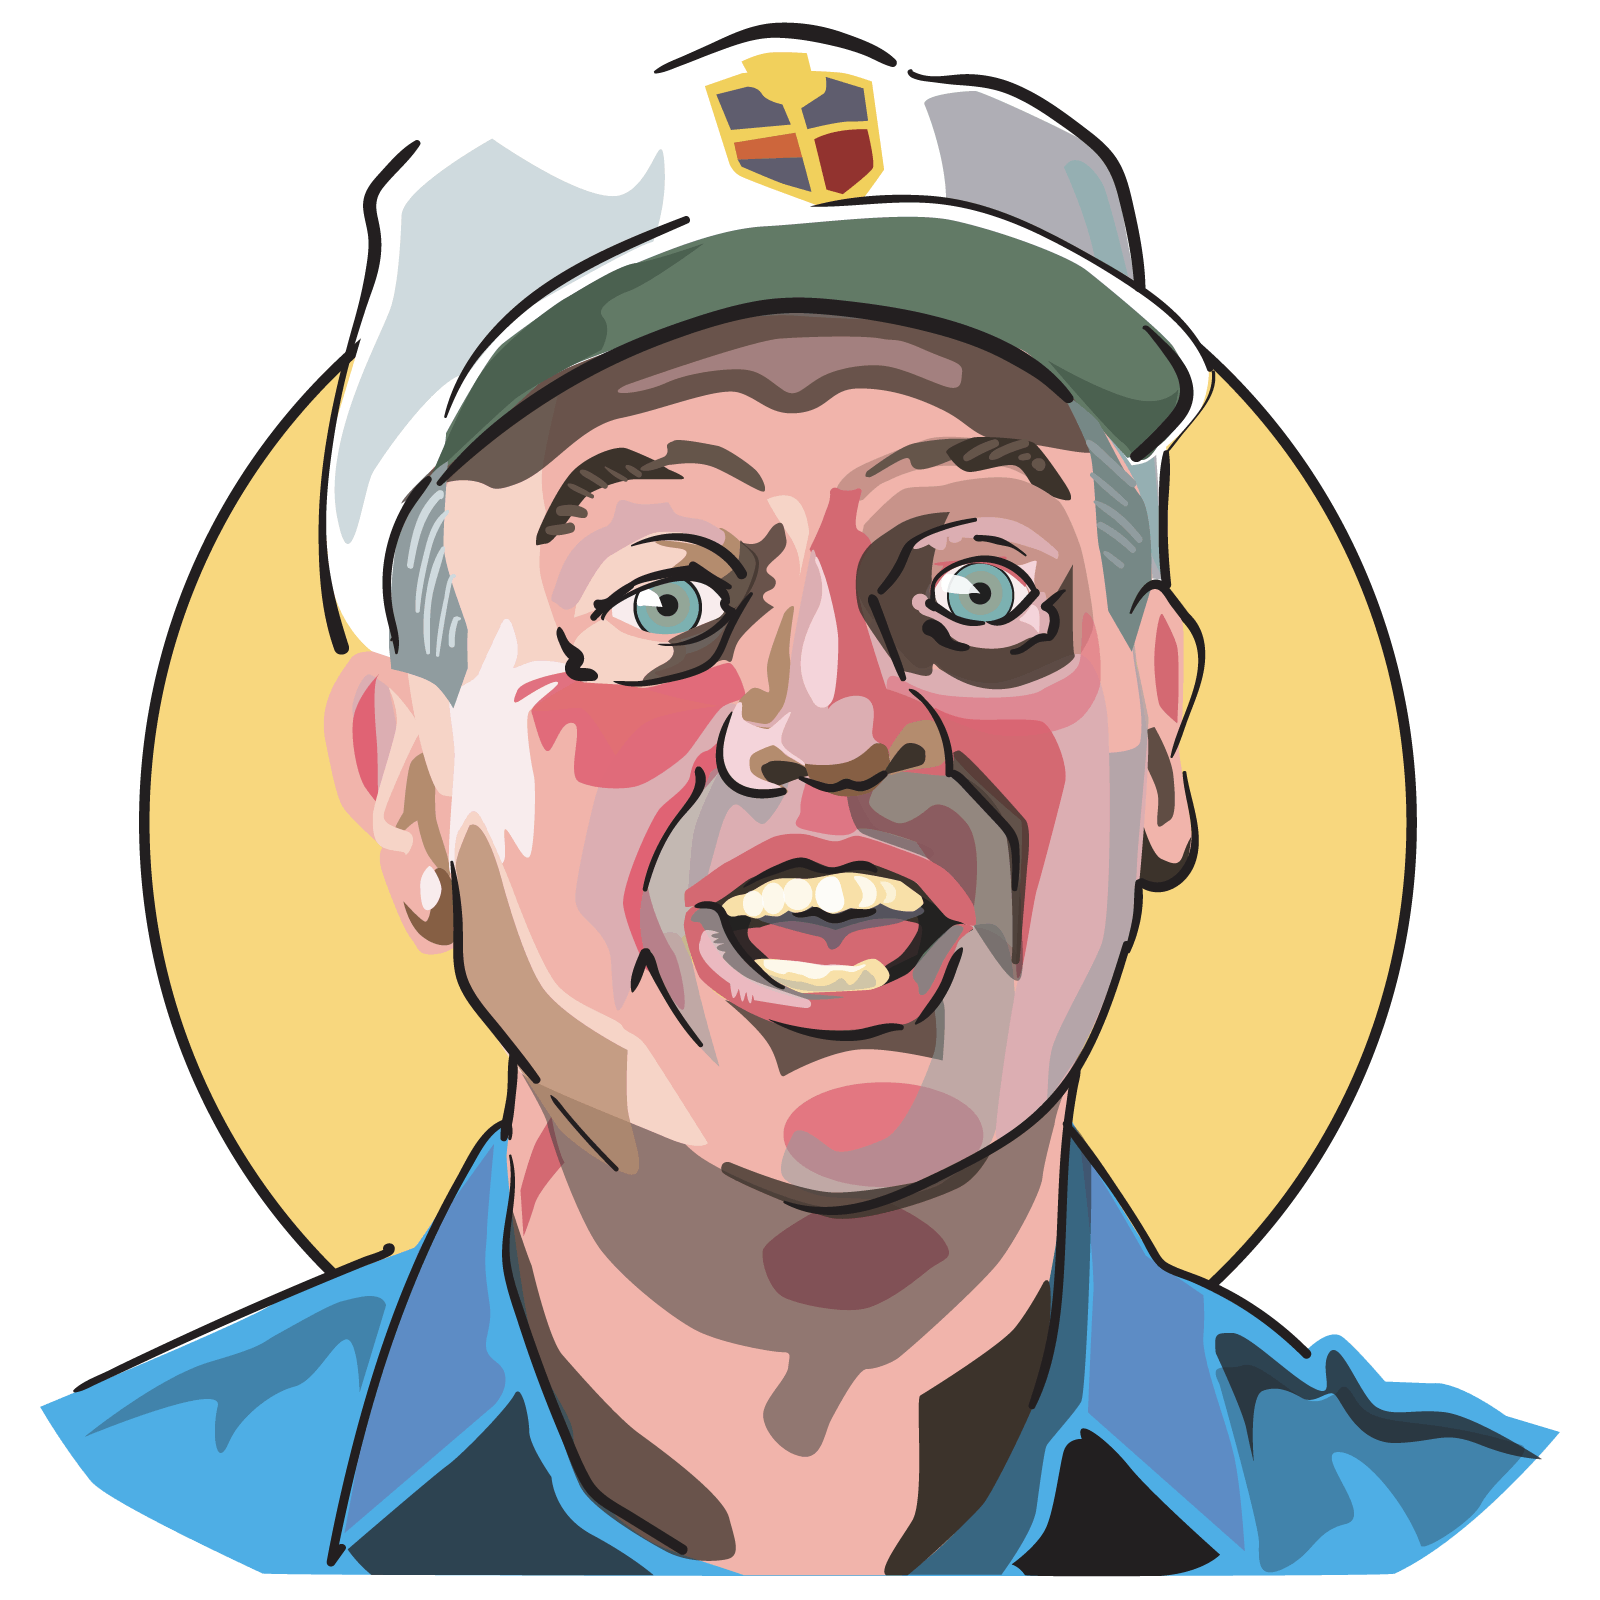 Rodney Dangerfield from Caddyshack